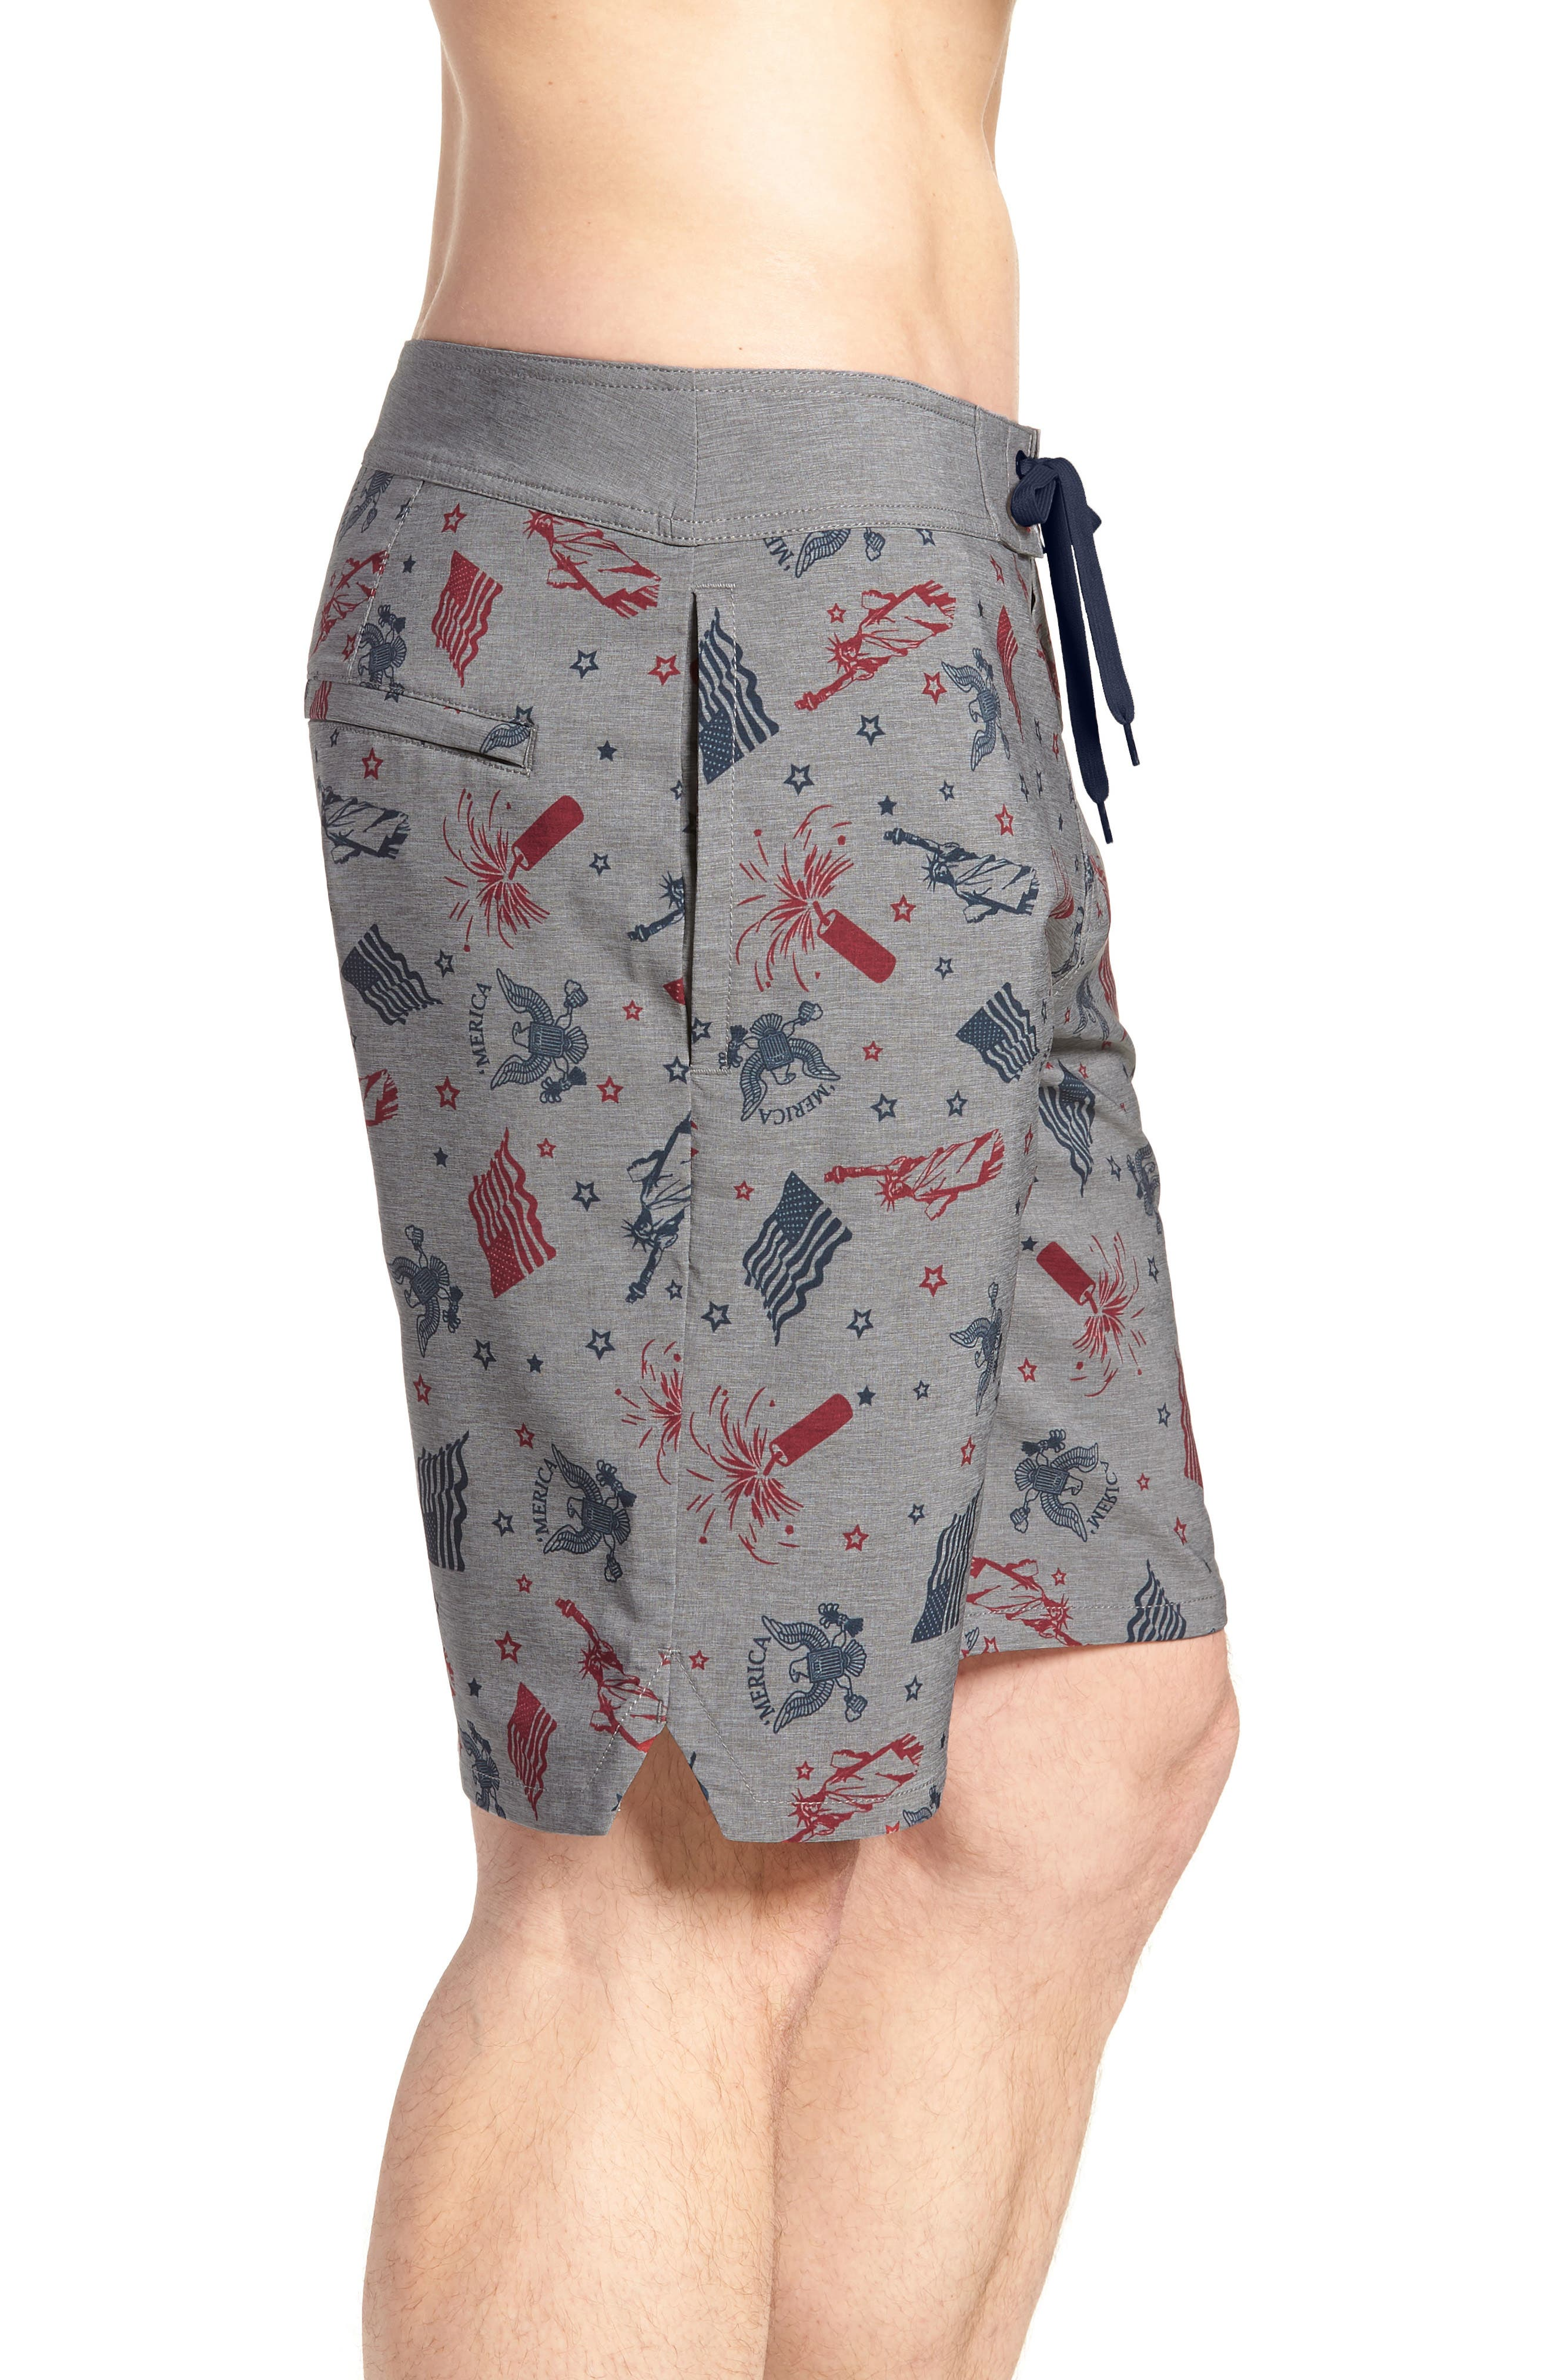 Liberty Swim Trunks,                             Alternate thumbnail 3, color,                             020